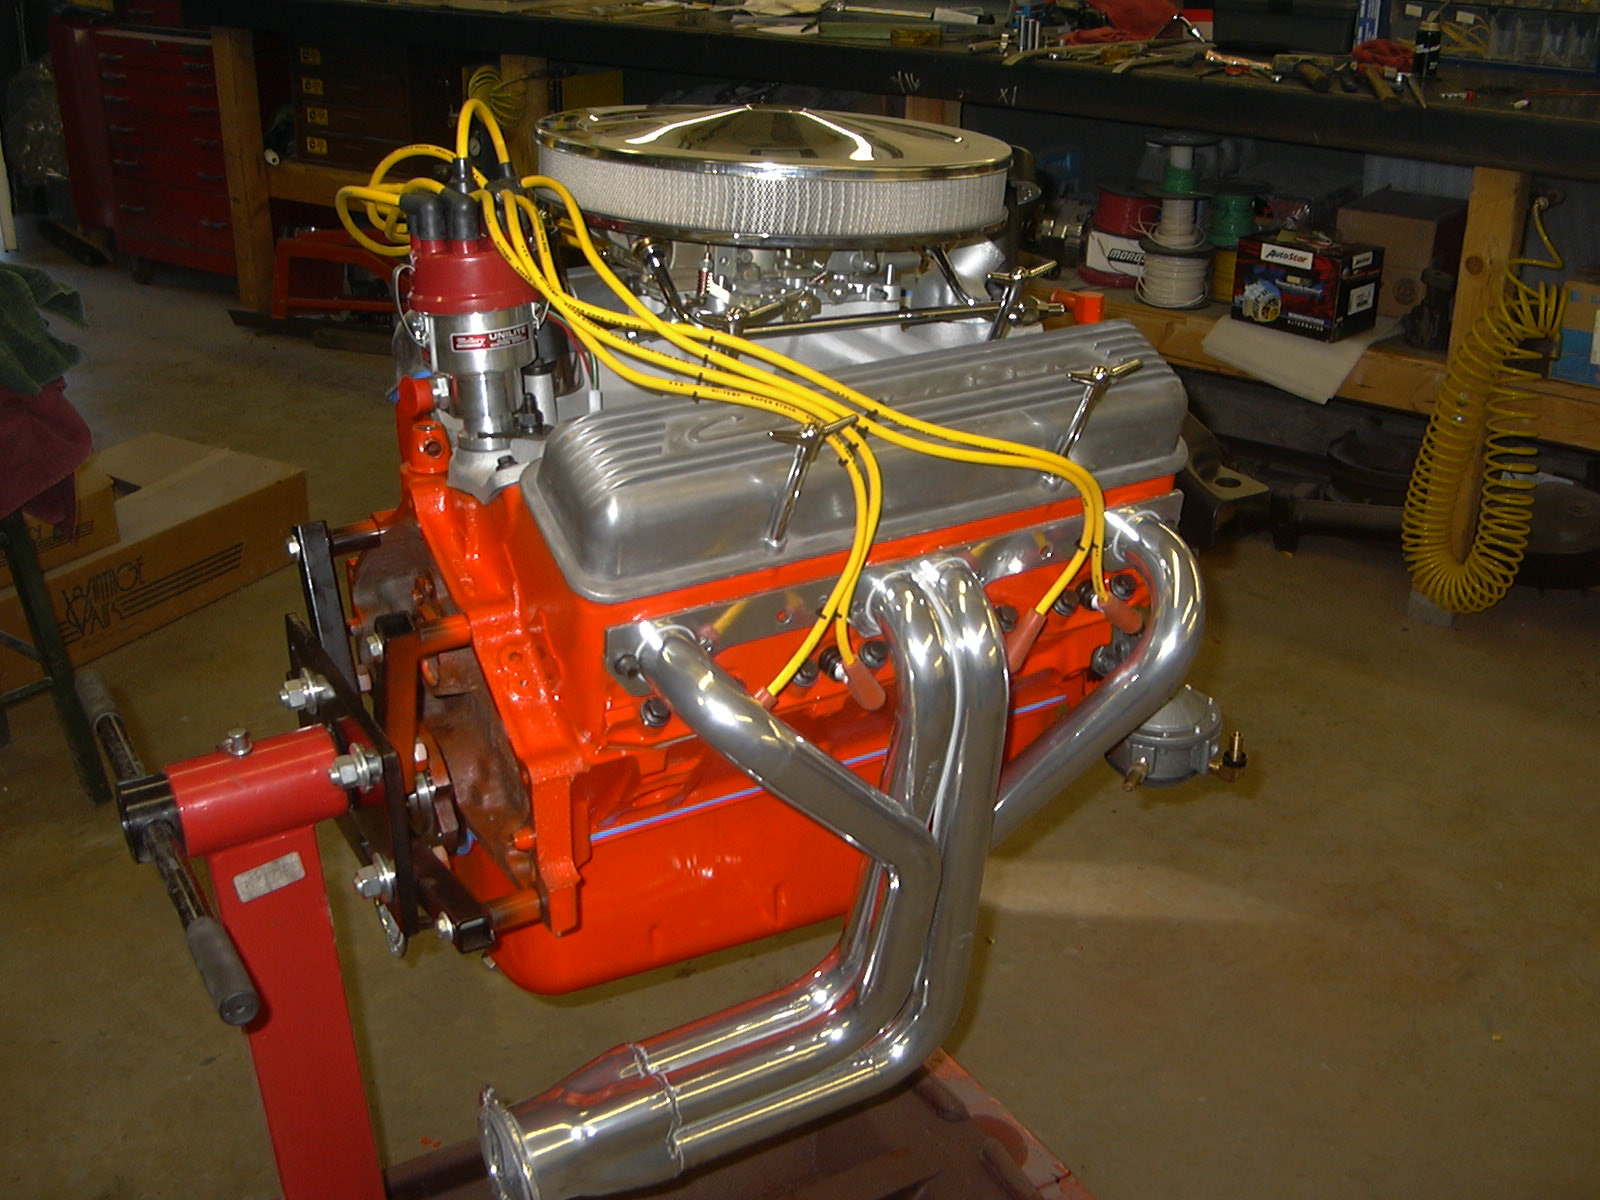 This is a build-up of a hot little 327 Chevy